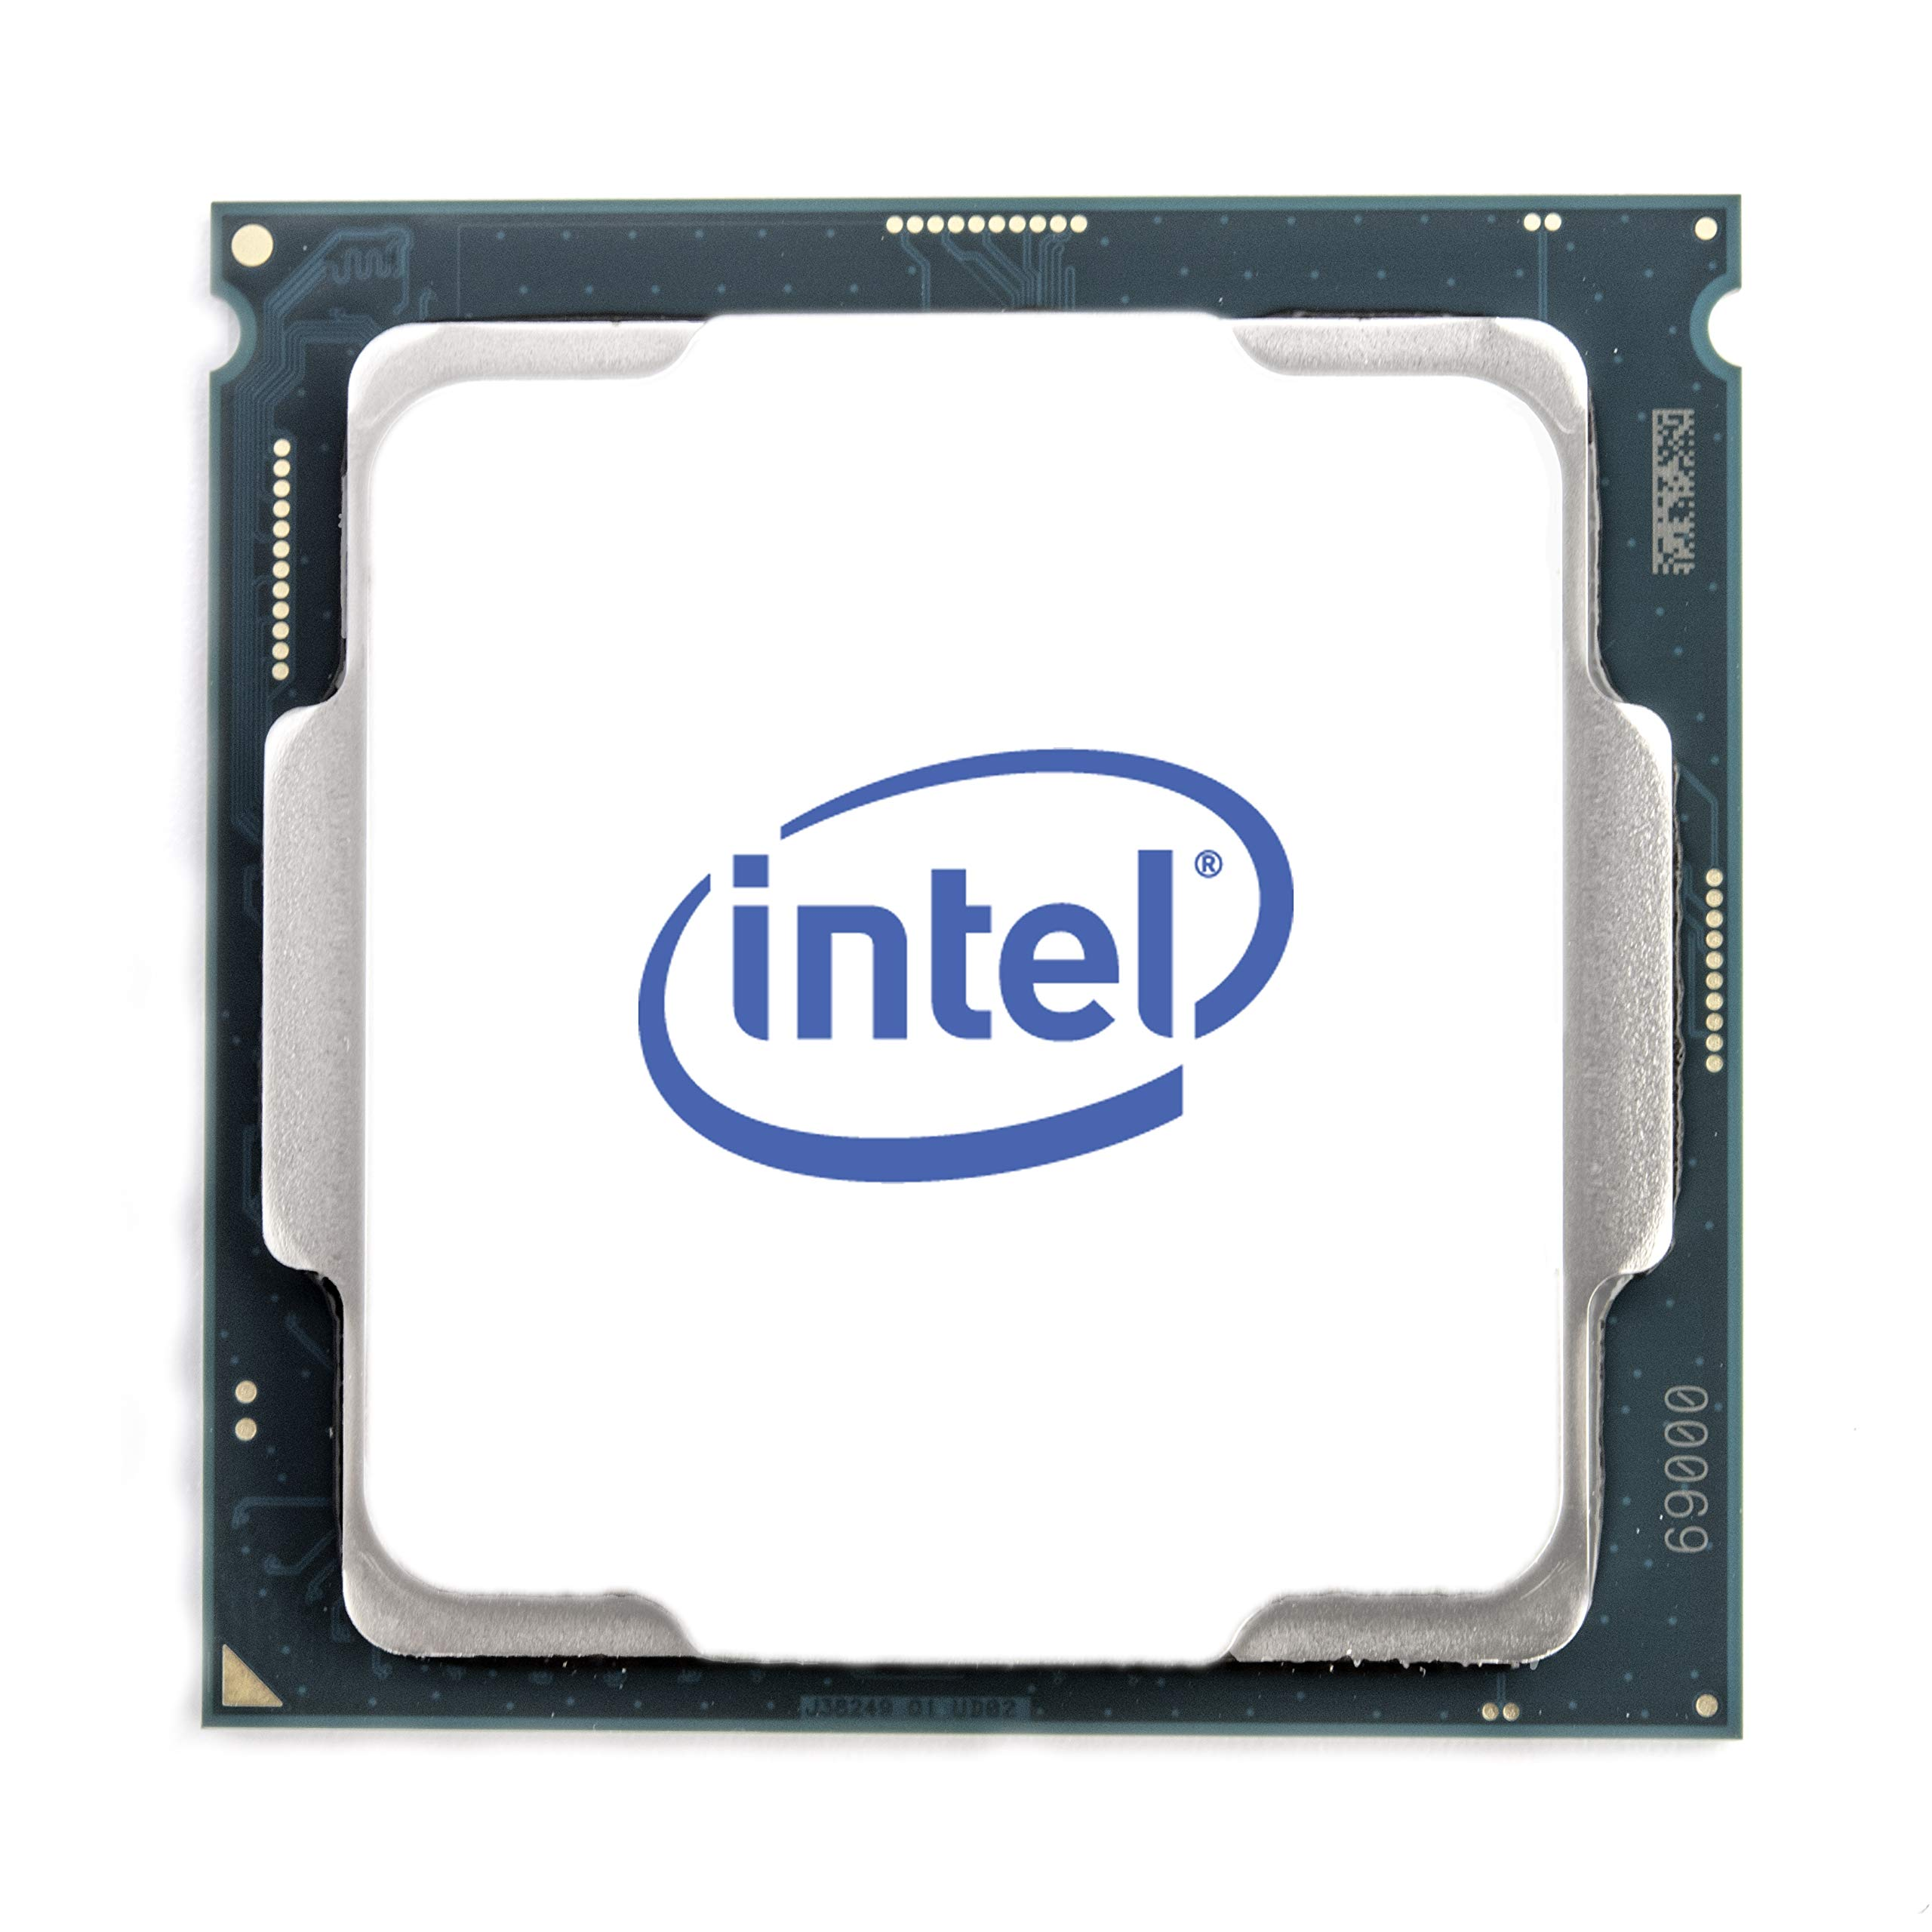 Intel Celeron G4930 2 Core 3.2 GHz LGA1151 300 Series 54W